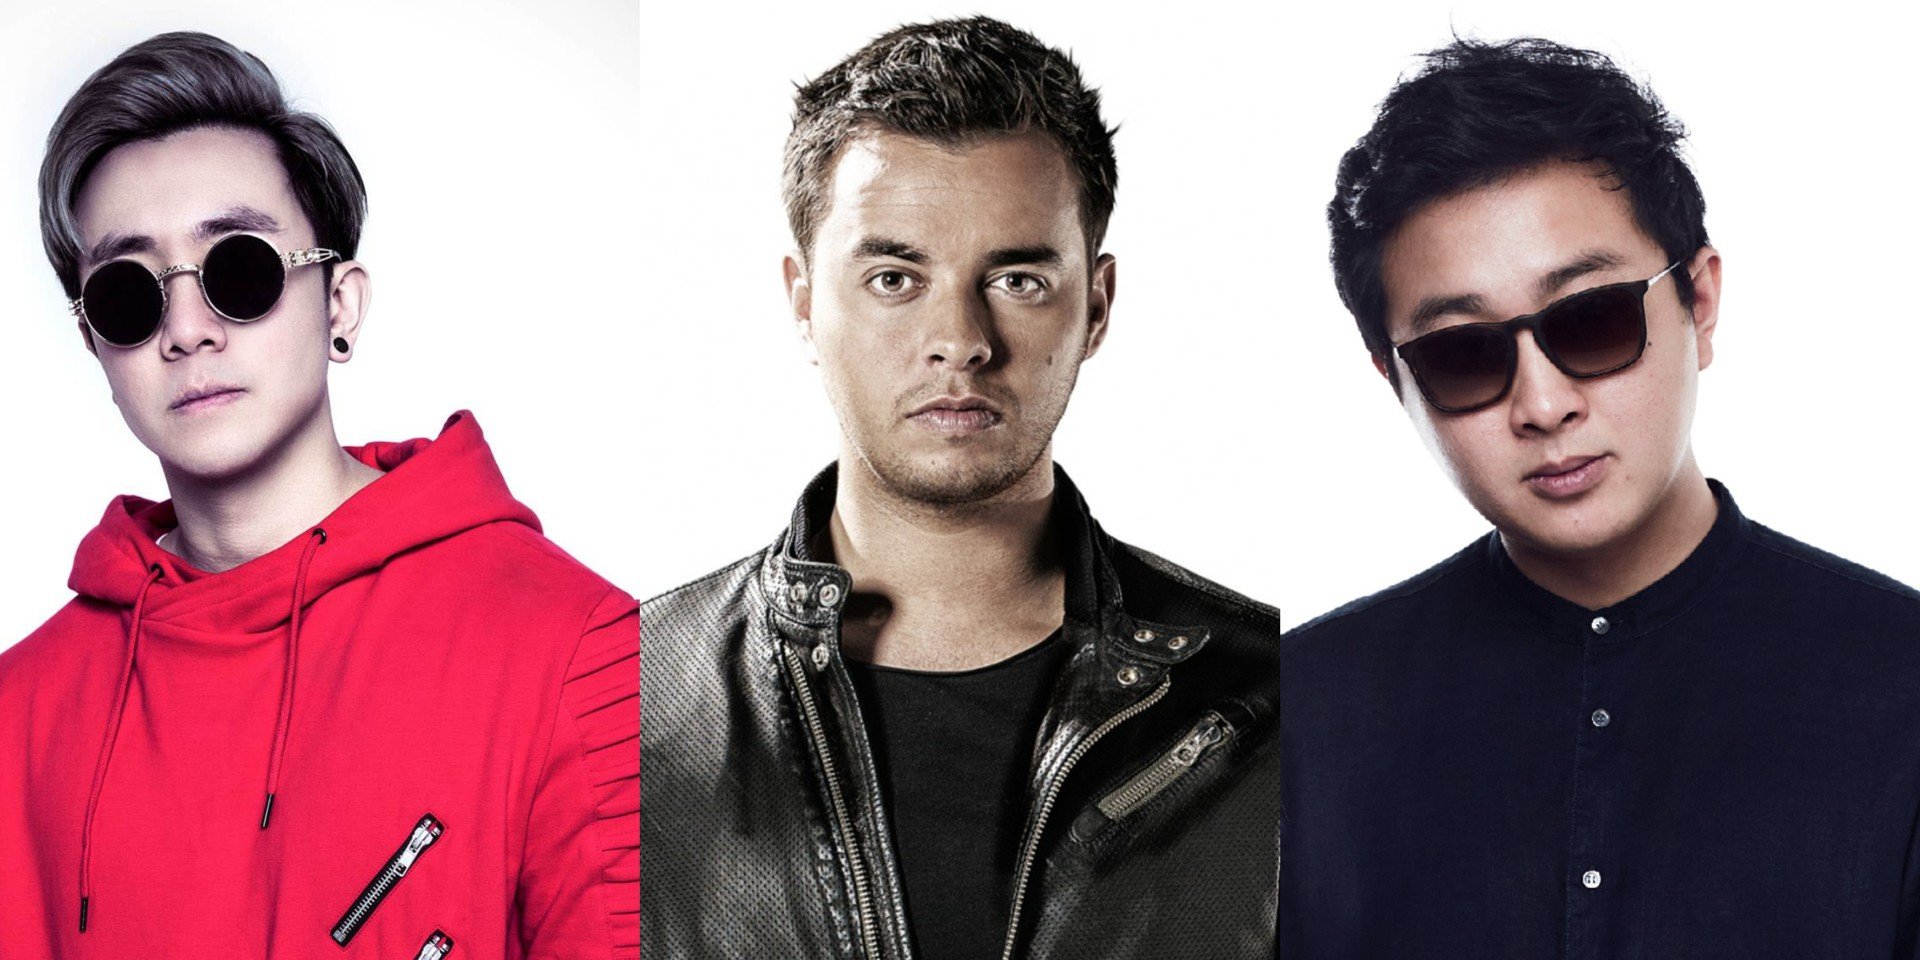 Quintino, Lincey, Inquisitive and more to perform at Songkran Music Festival in Singapore this April